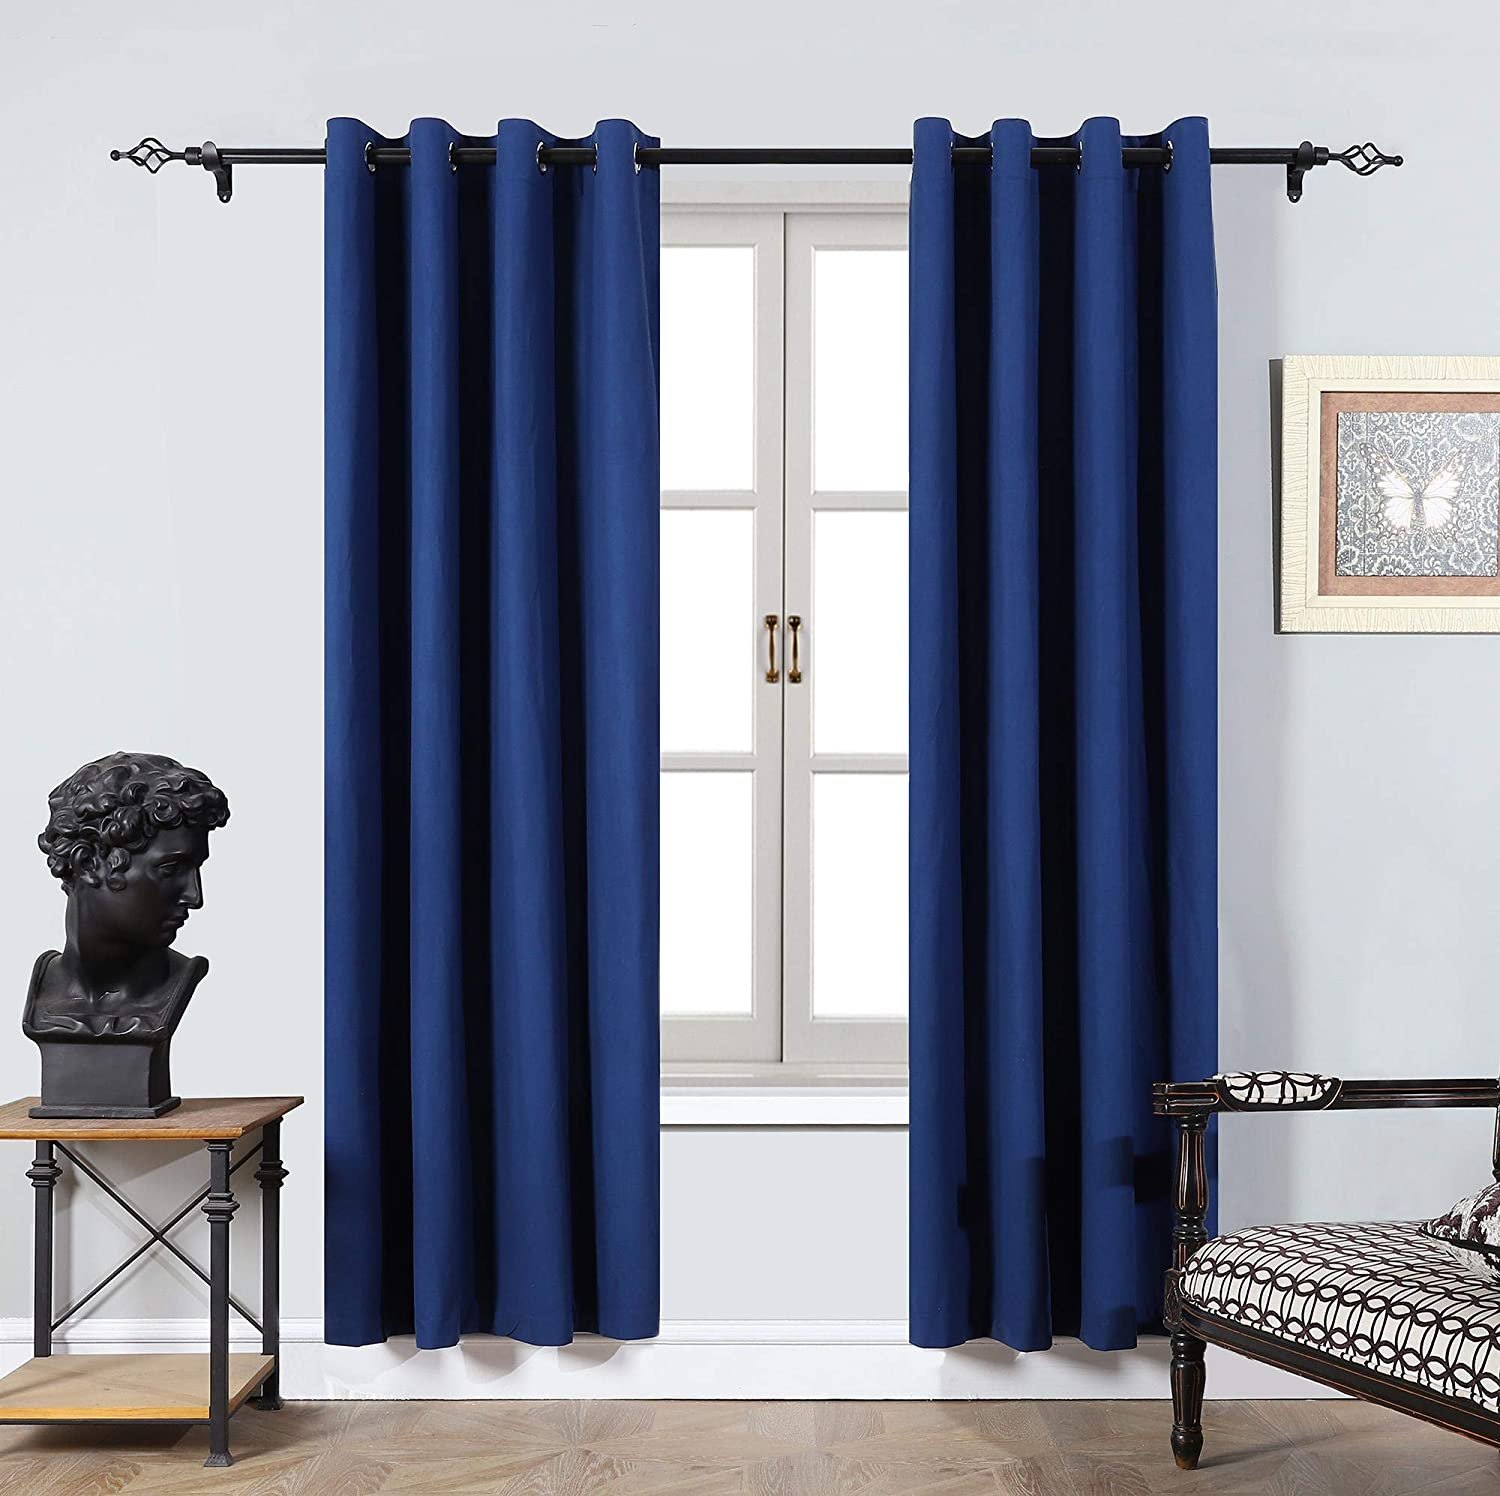 Cherhoo Soft Velvet Curtains,Grommet Top Room Darkening Curtains Window Treatment Drapes for Bedroom and Living Room,Set of 2 Blackout Curtain Panels(Navy Blue,W52 × L96 Inch)